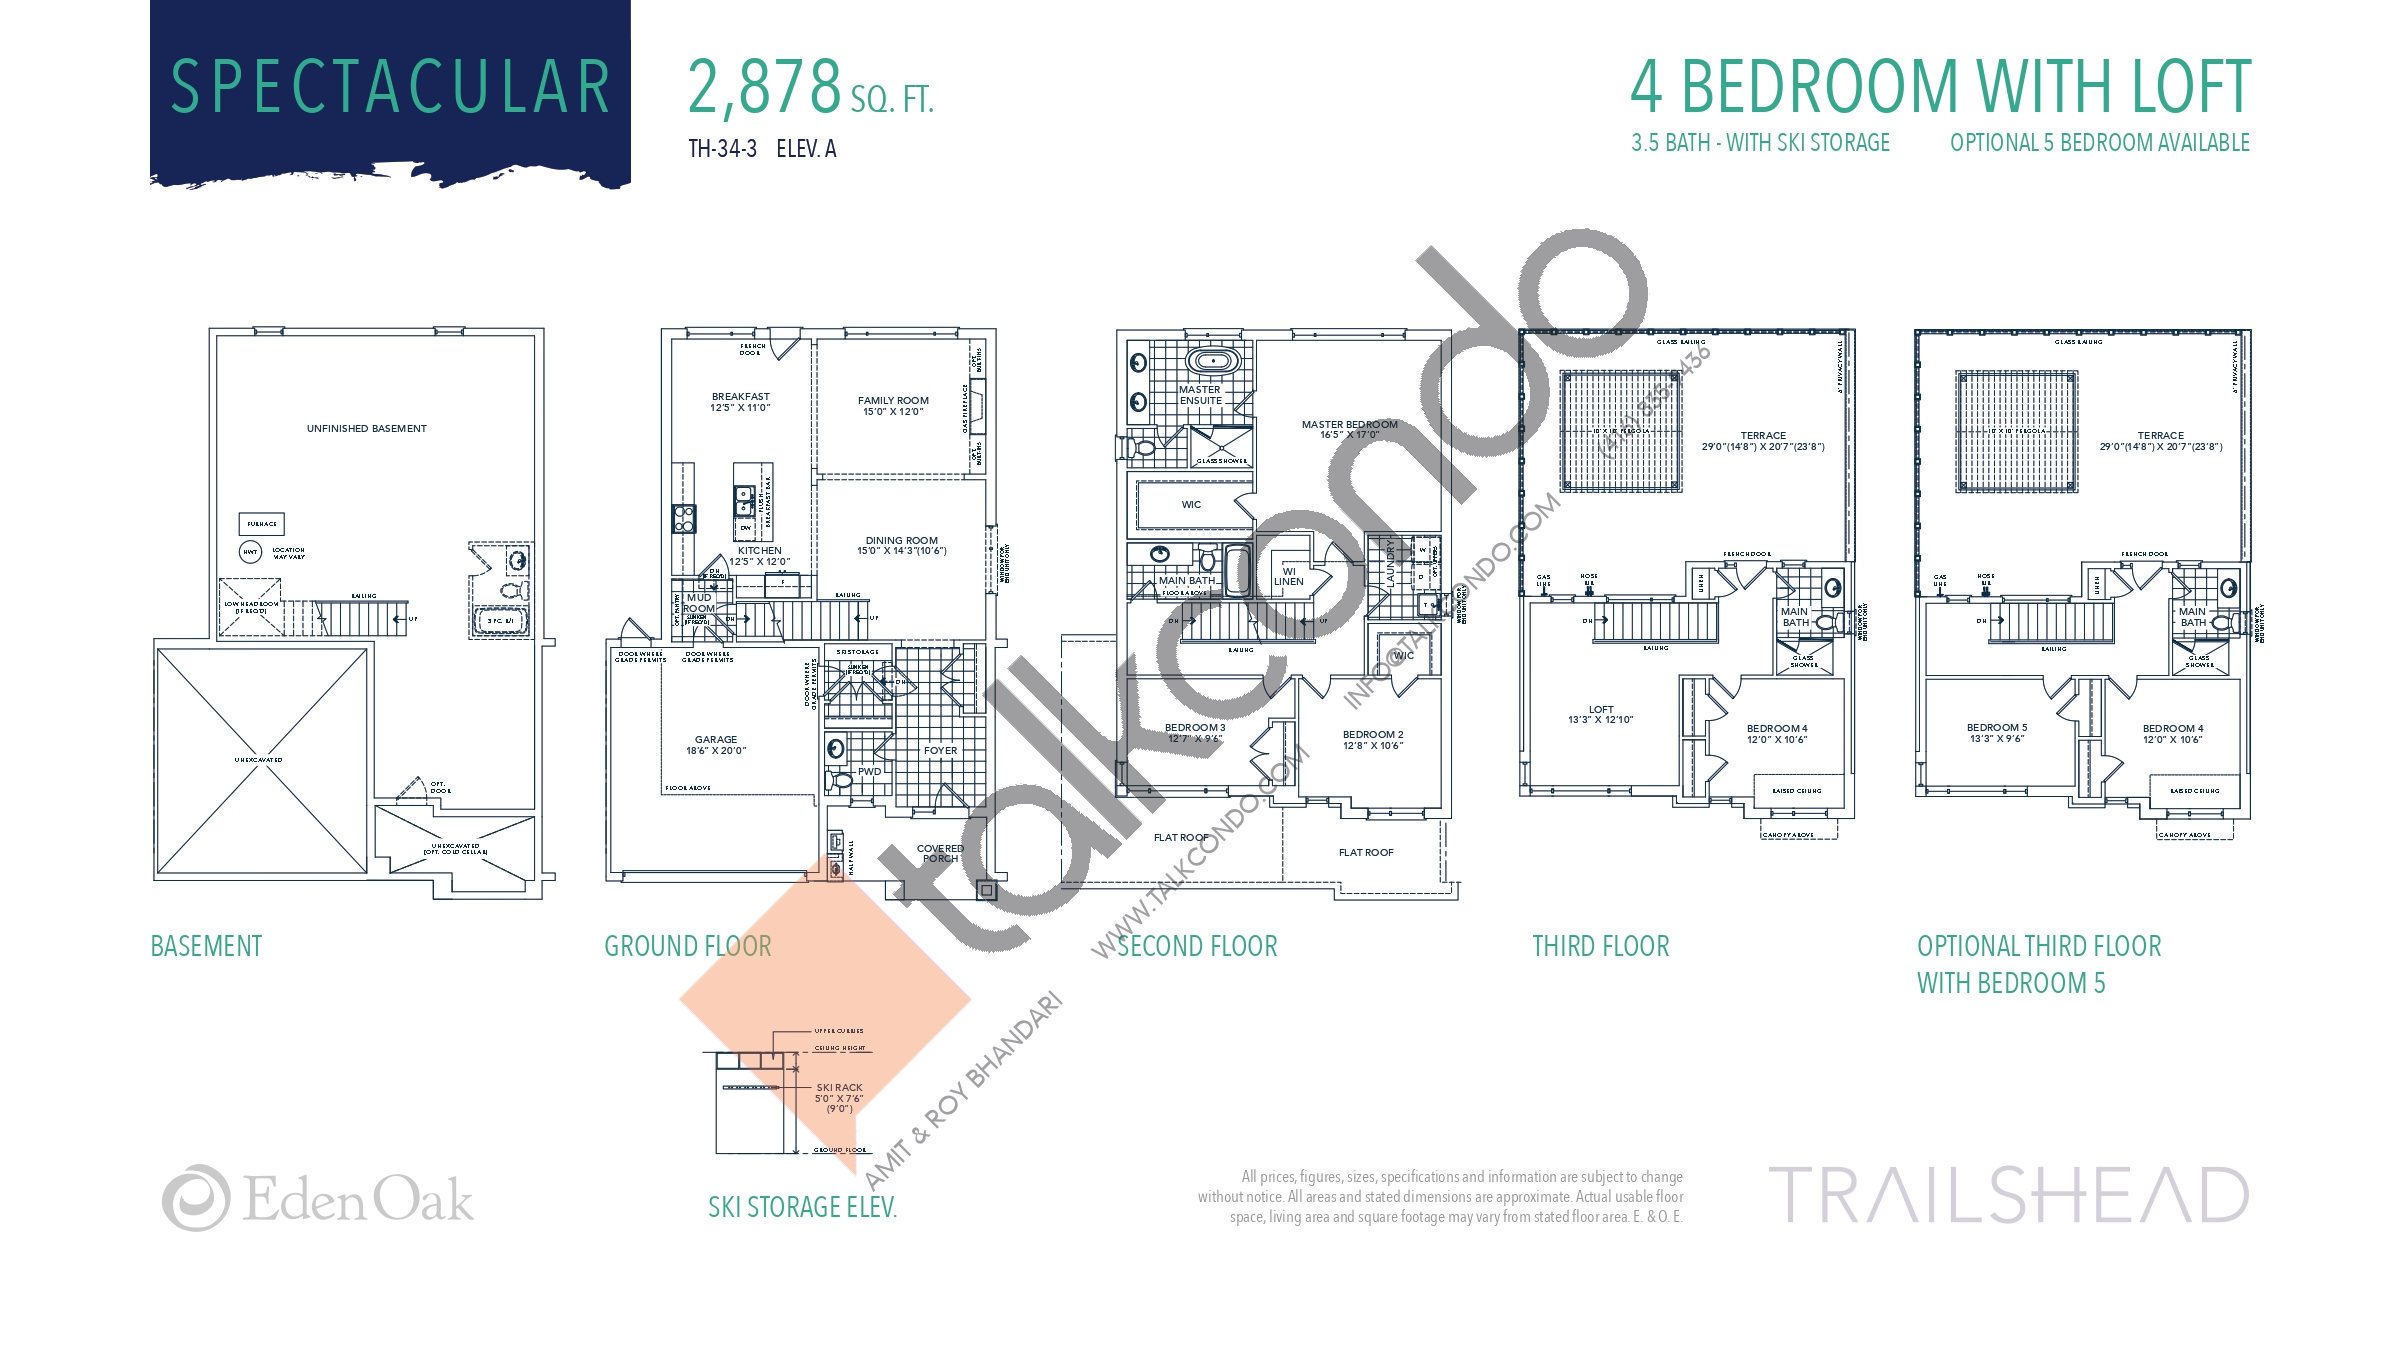 Spectacular (1/2) Floor Plan at Trailshead Towns - 2878 sq.ft